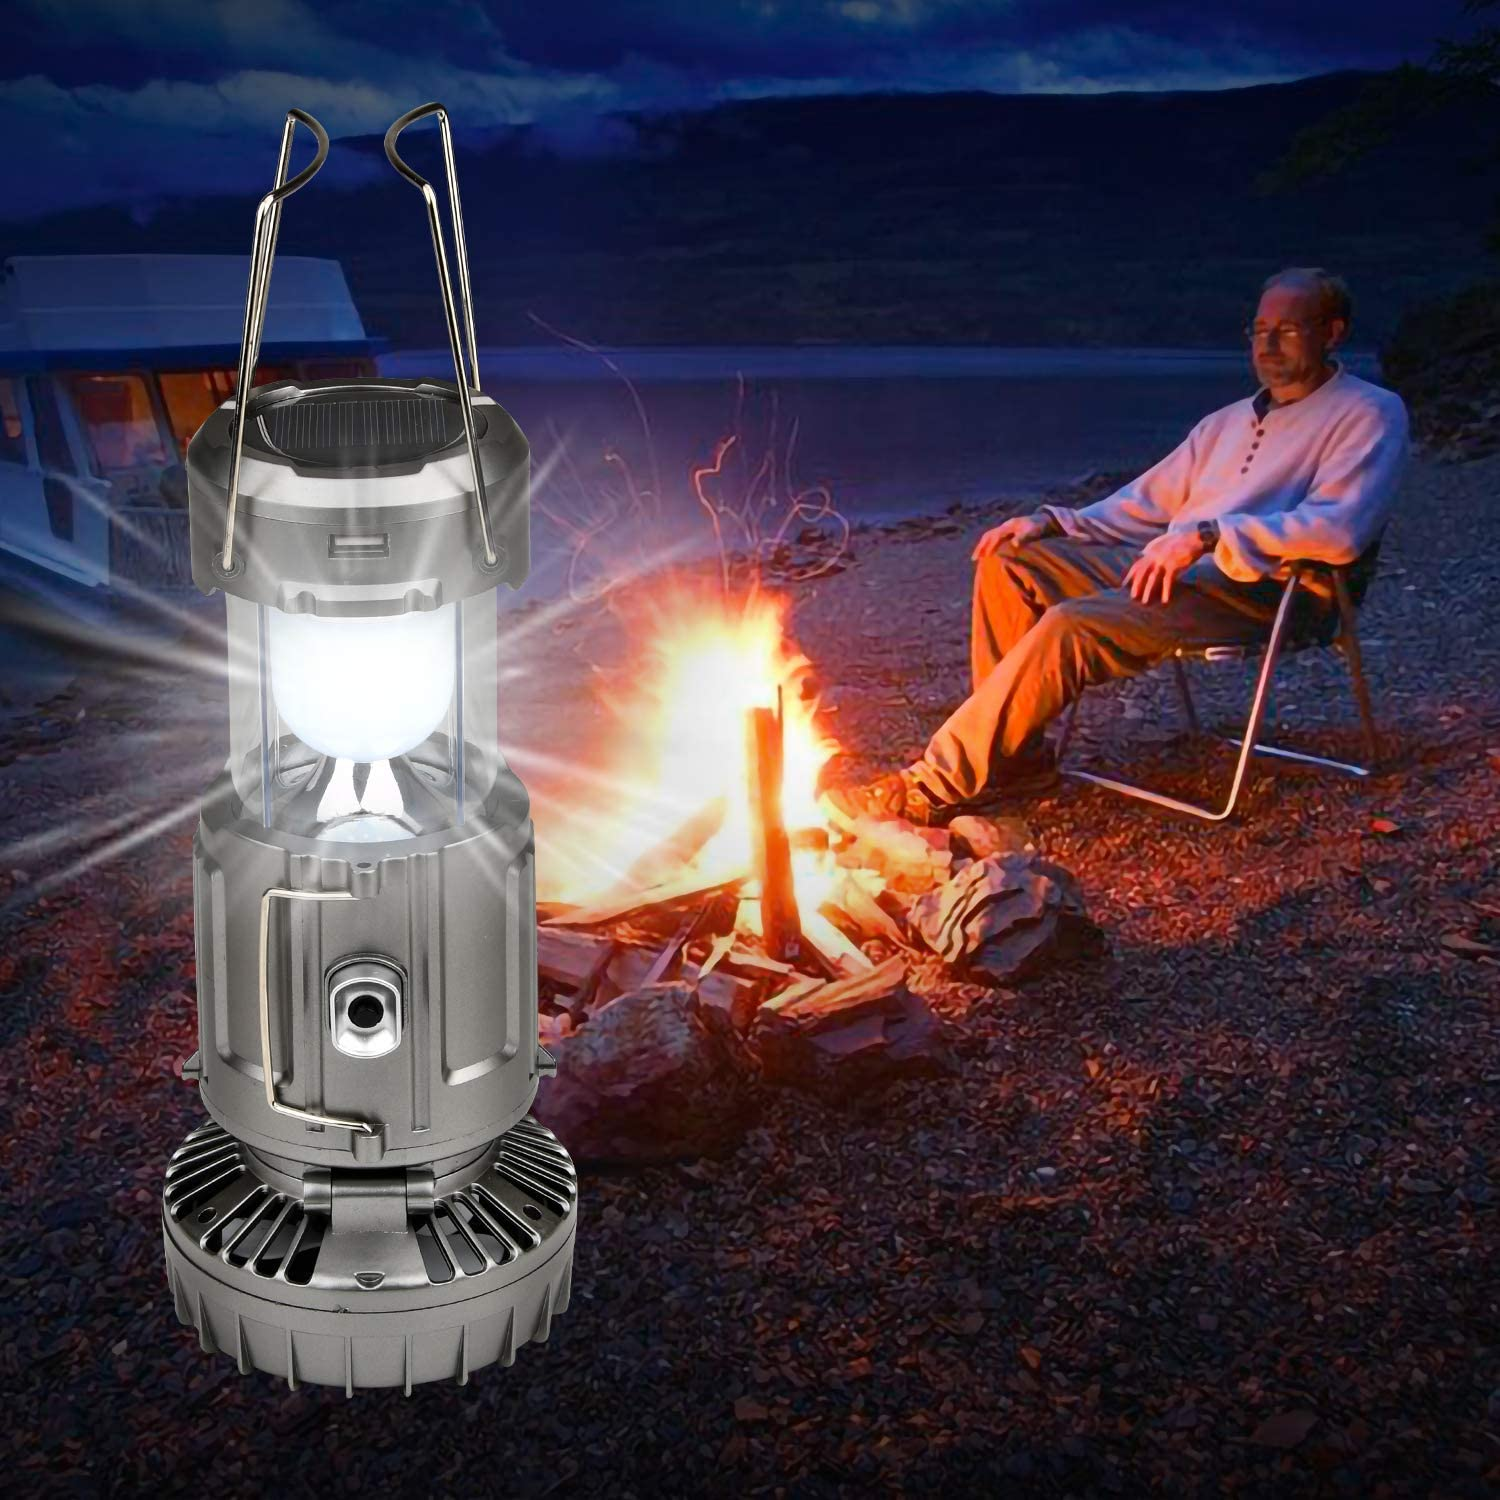 Camping Lantern Solar Light with Fan TechKen Portable Collapsible Mini USB Supply Power Tactical Flashlight Solar LED Bright Lamp Emergency Tent Light for Outdoor Camp Hiking Fishing Reading Hurrican